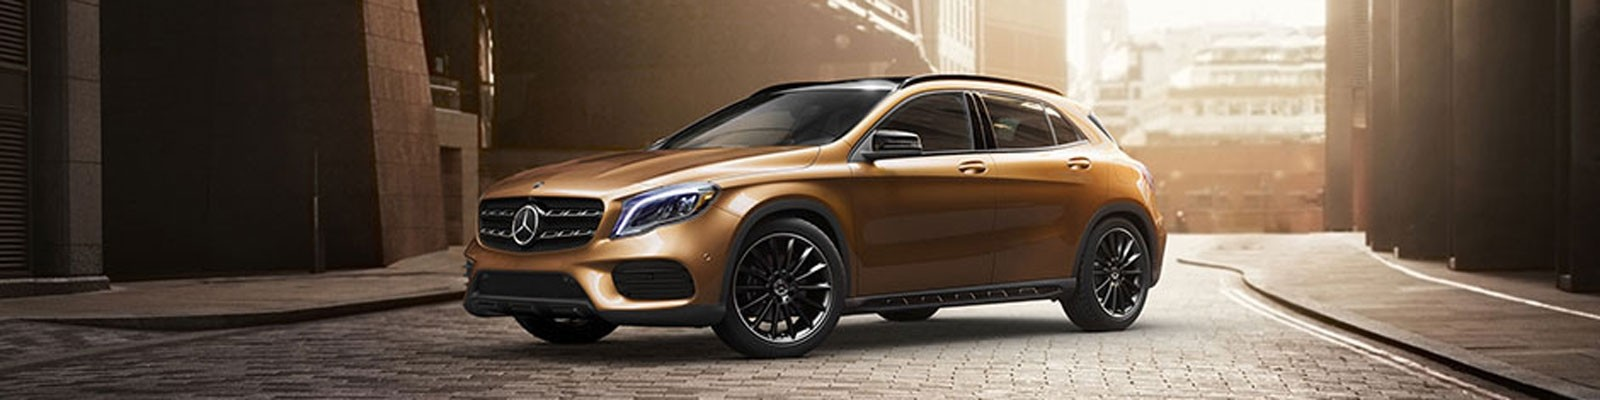 Buy a 2018 mercedes benz gla 250 mercedes benz near for Walters mercedes benz riverside